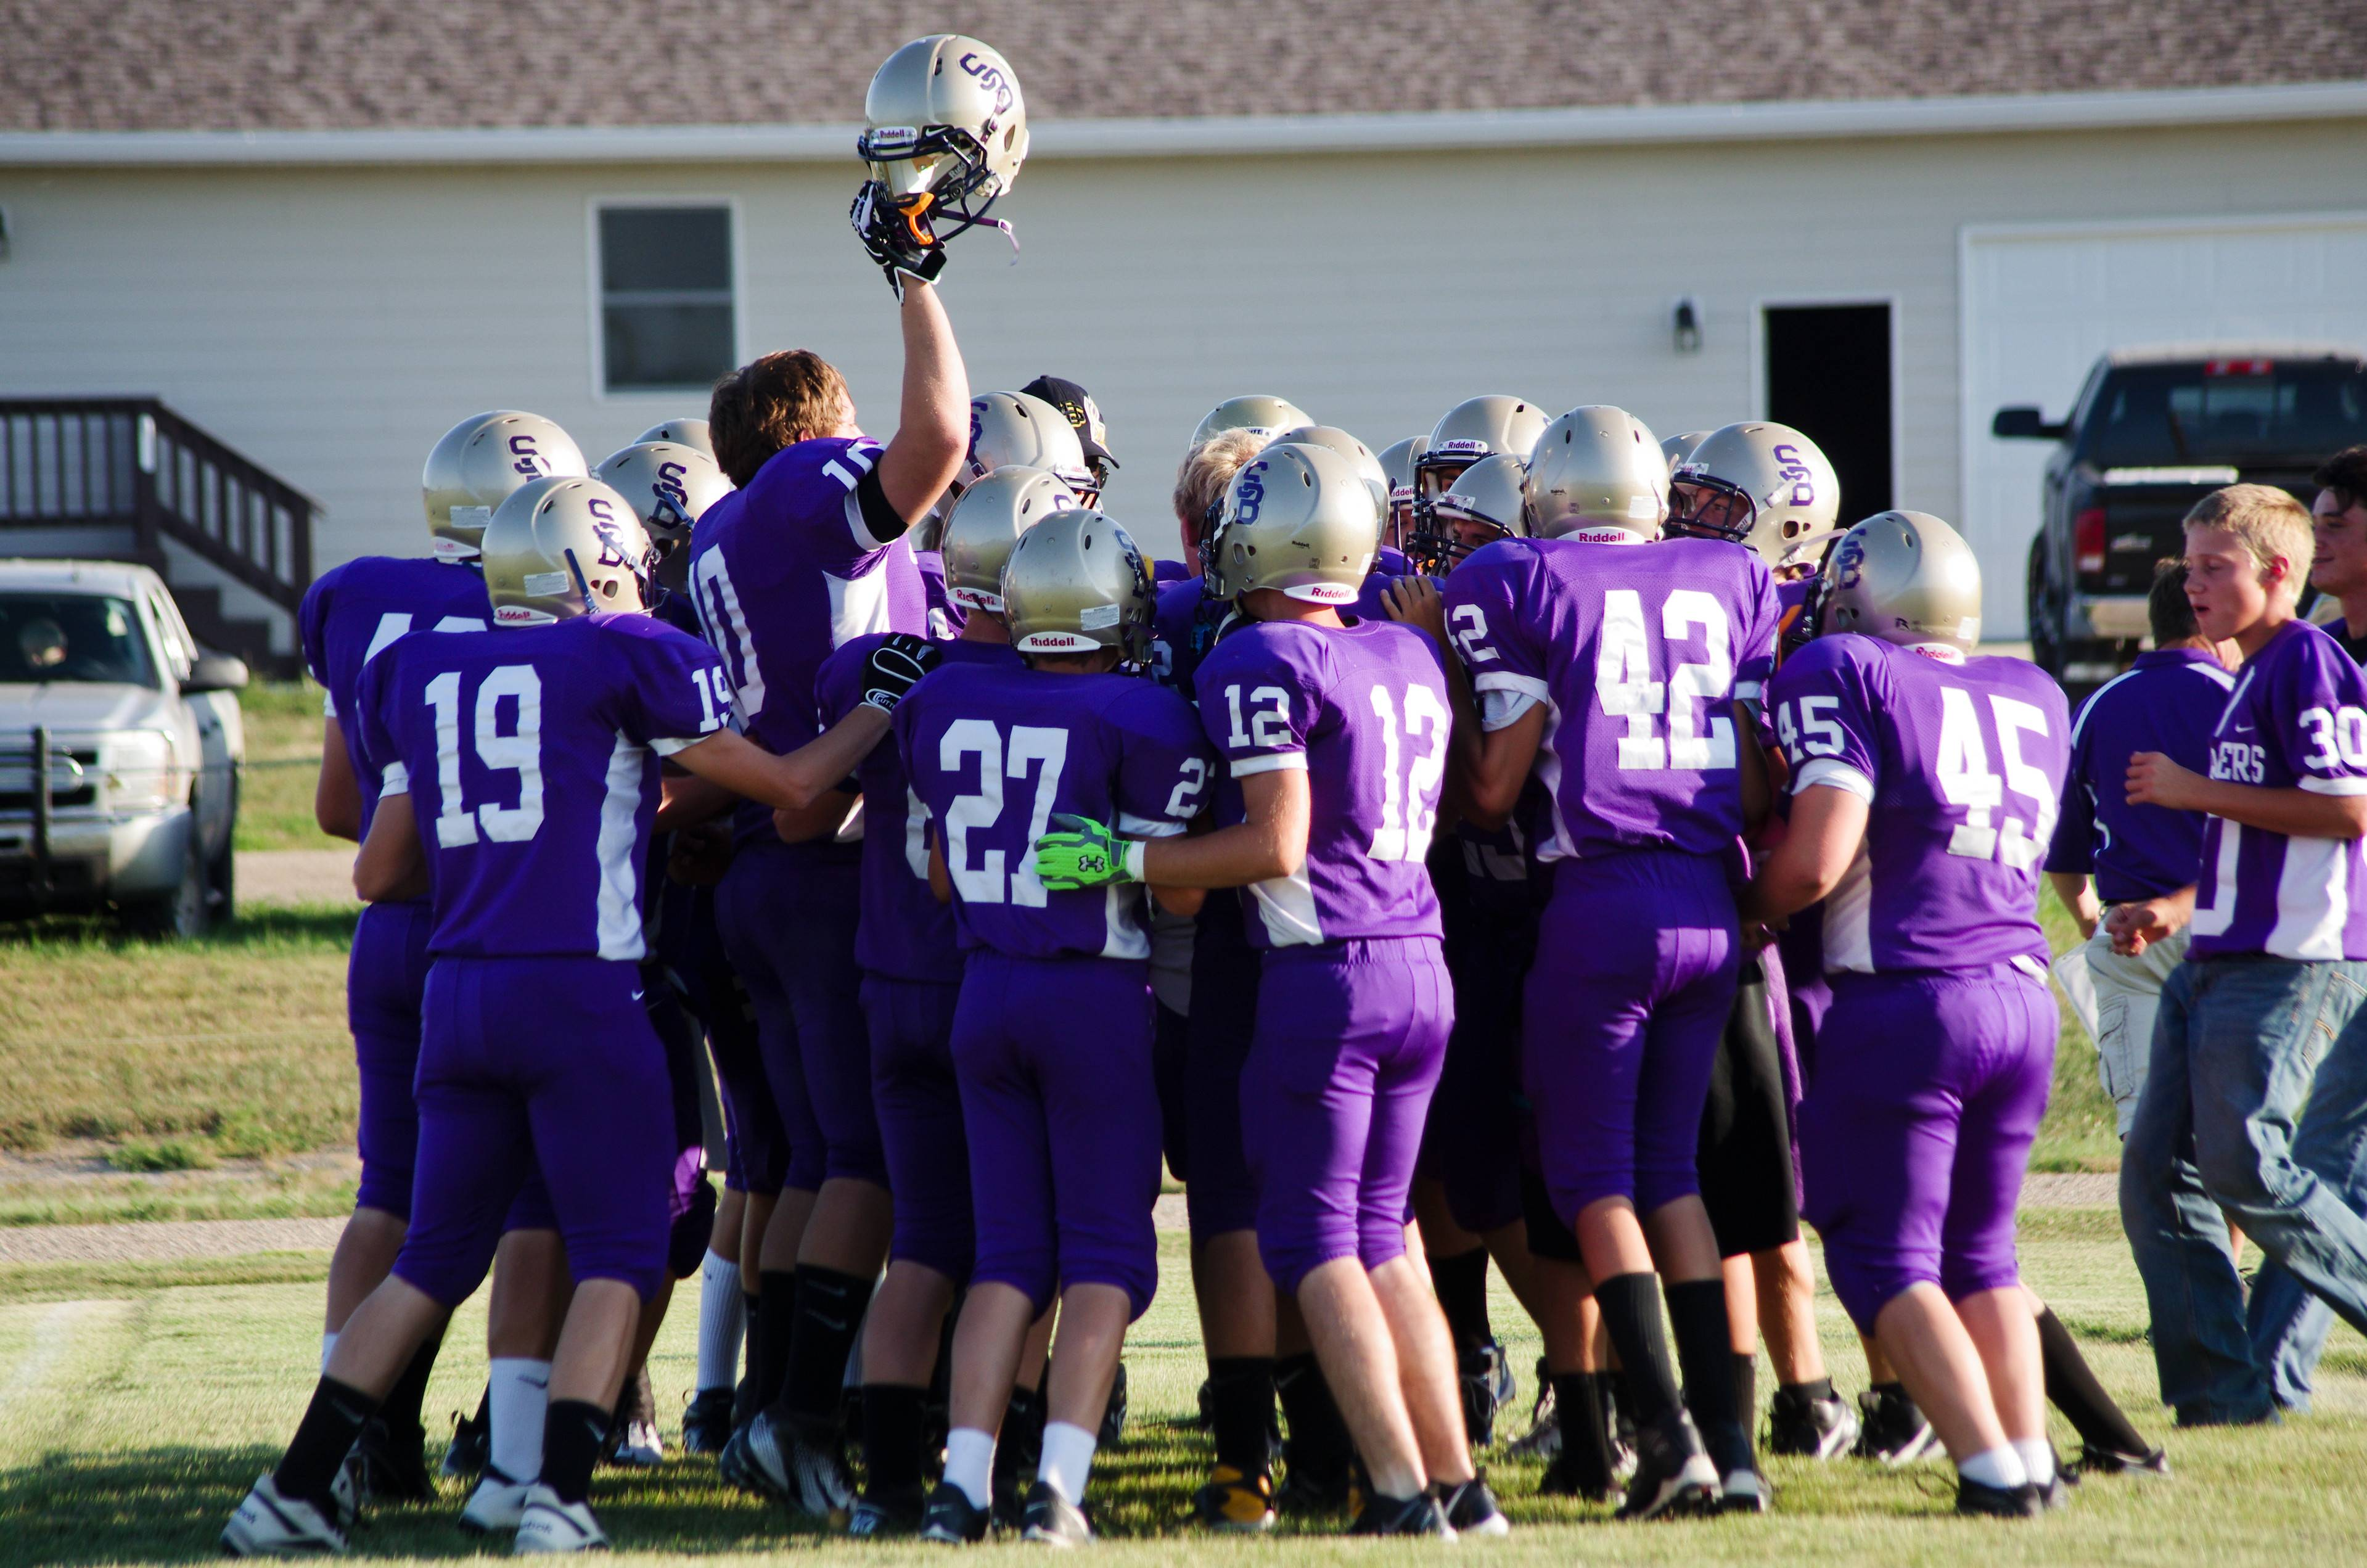 Sully Buttes football team